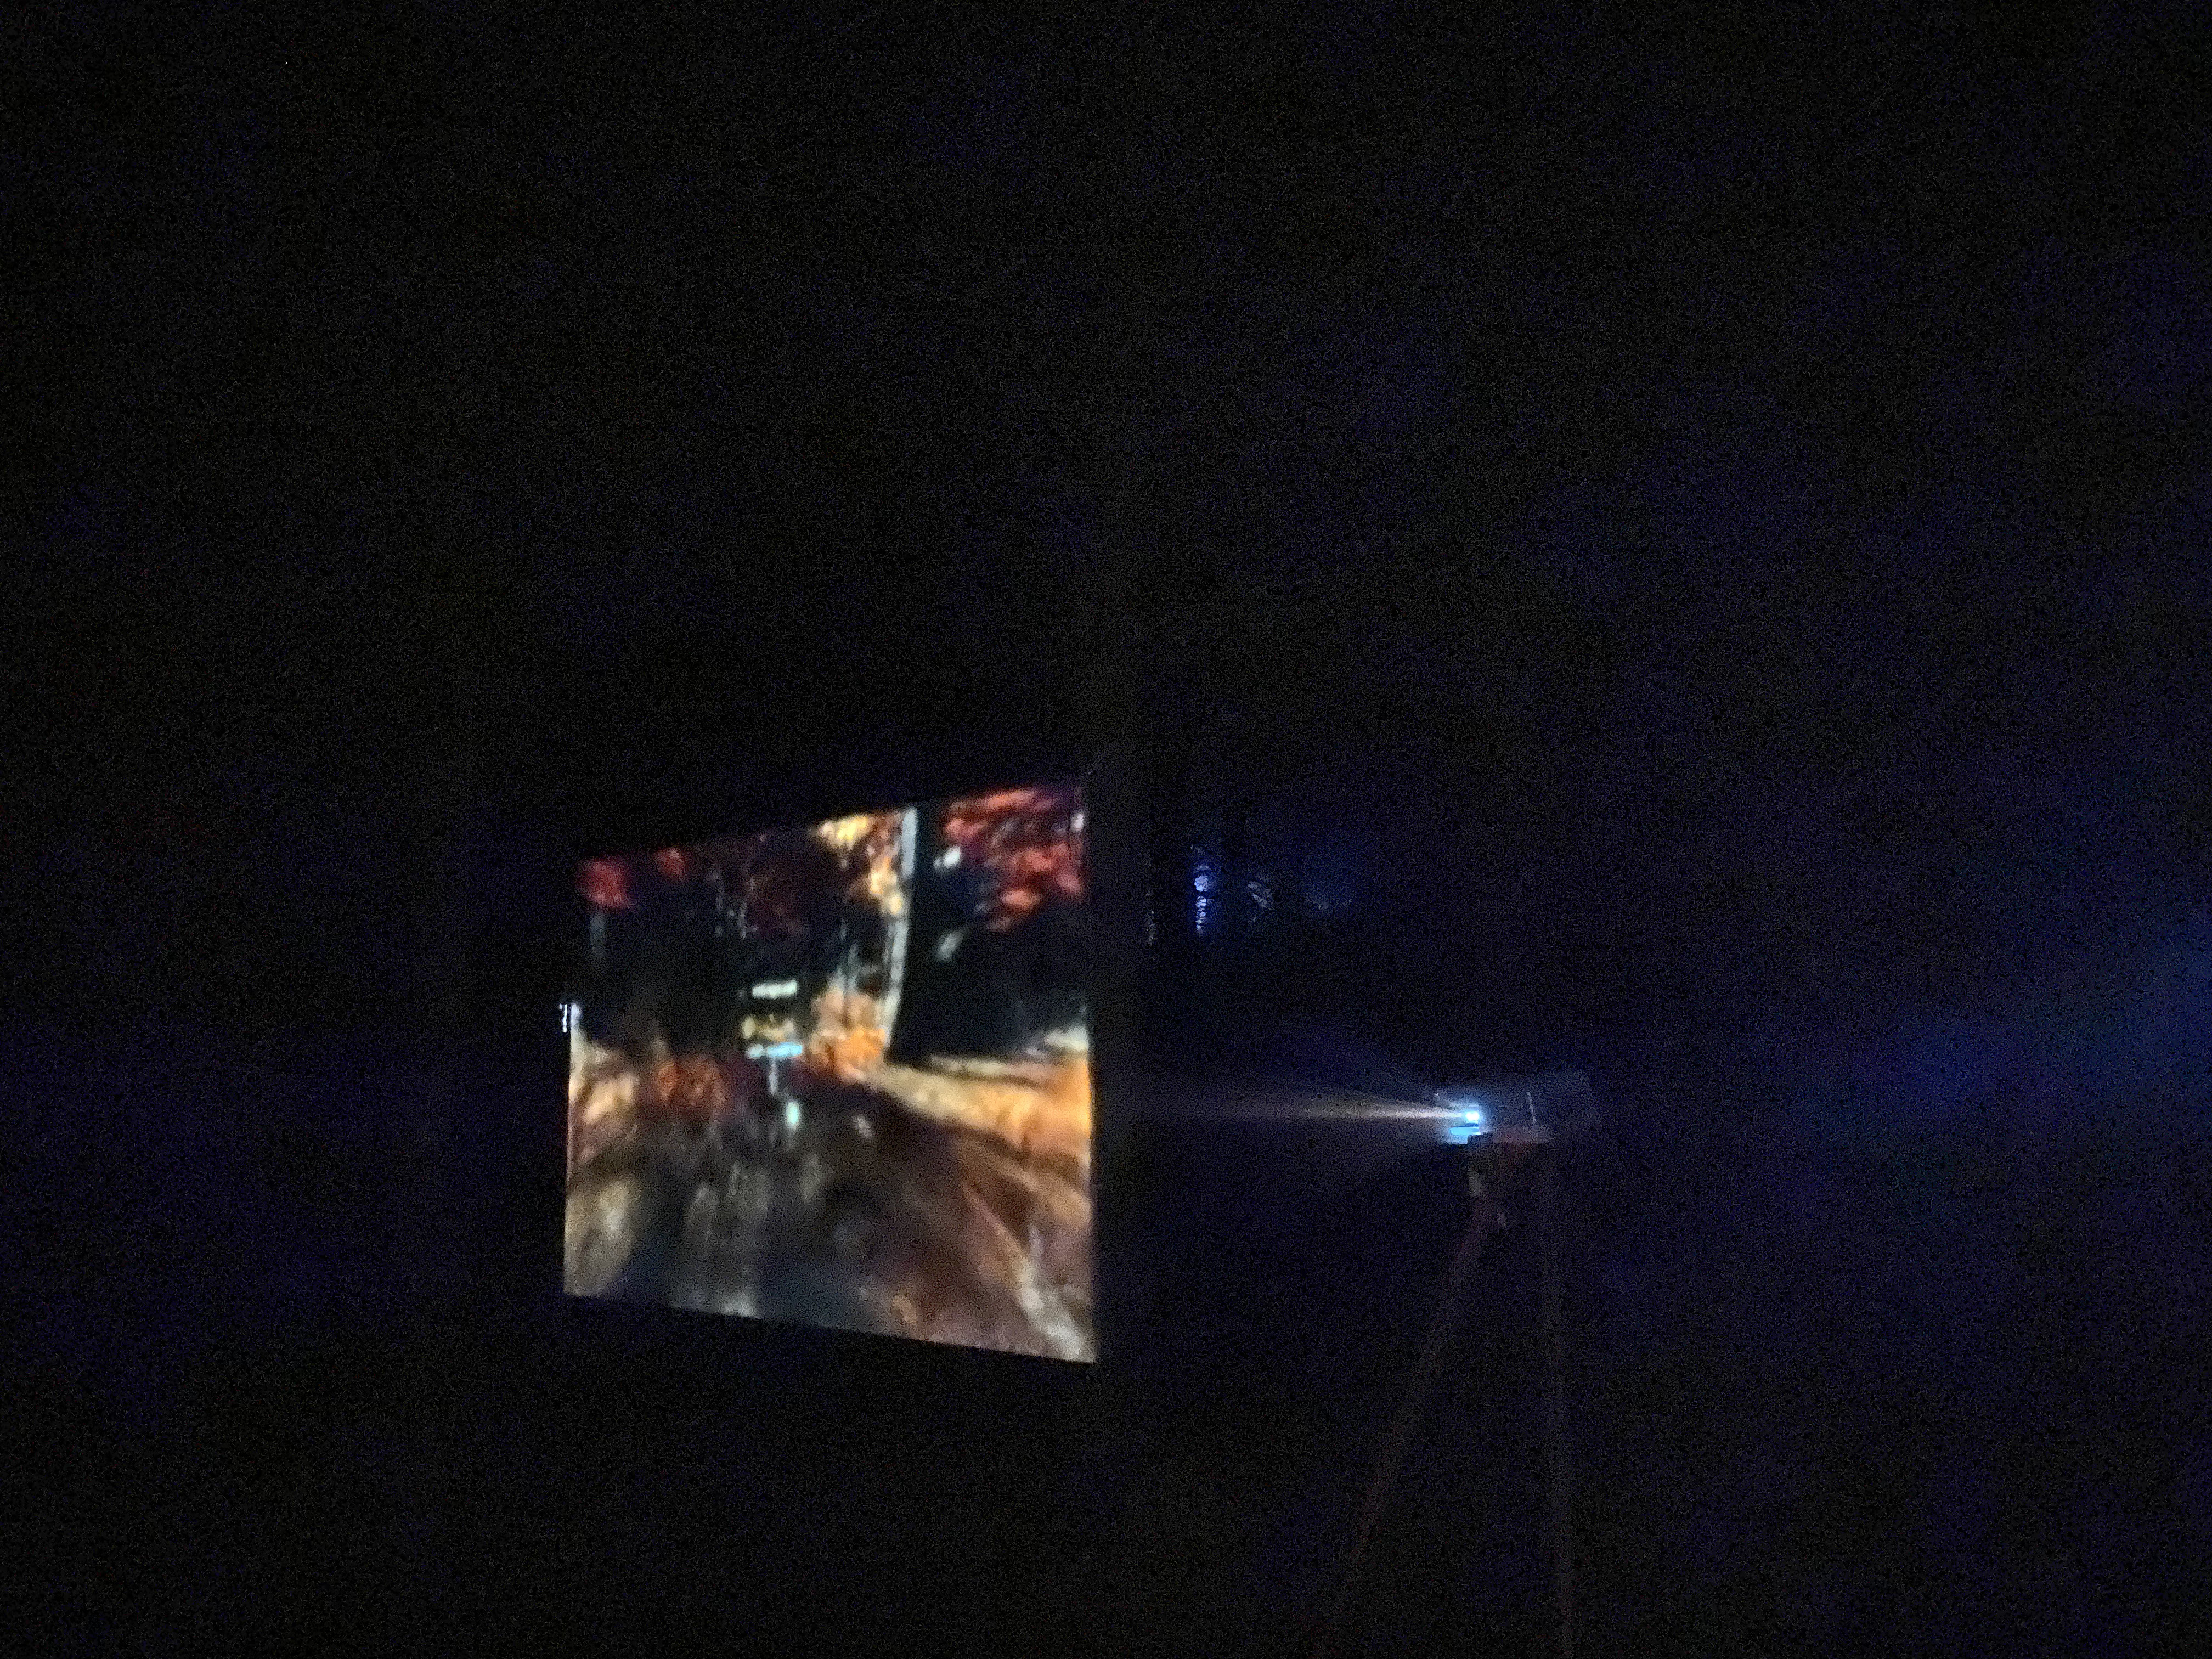 in an almost pitch-black woodland, there's a floating screen with a projector behind, showing an image of a character running through a digital woodland